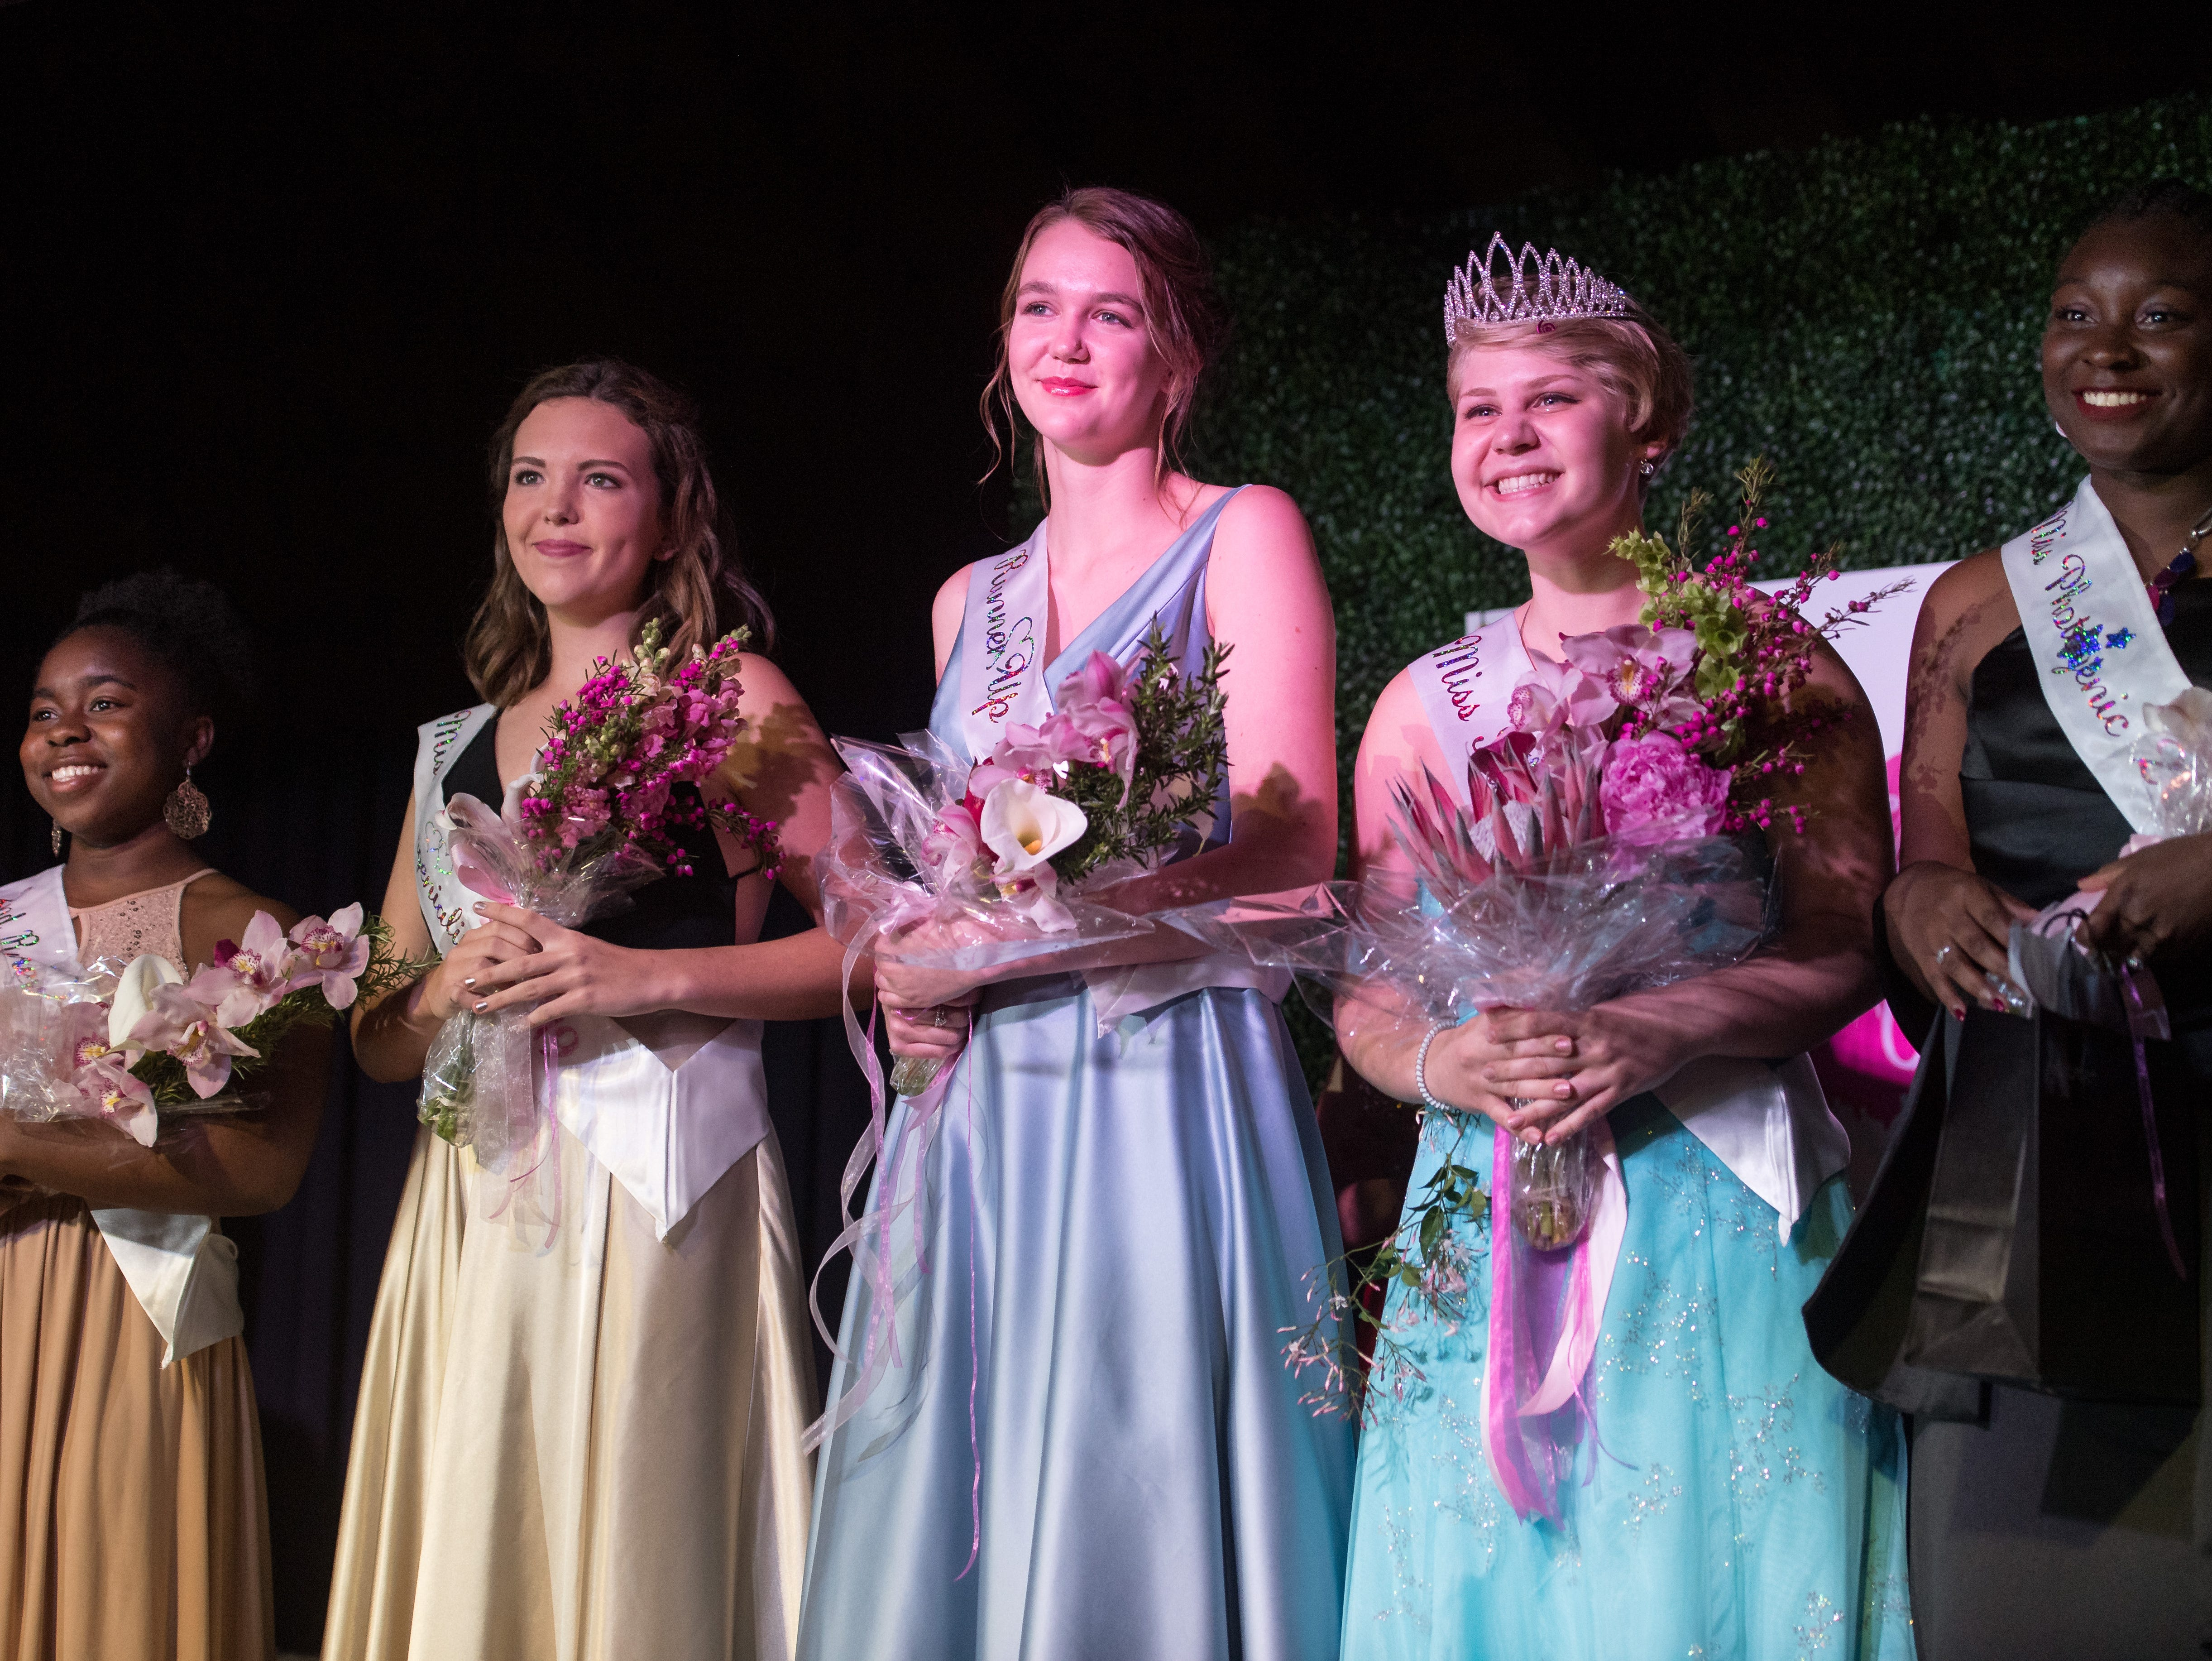 The 2019 Miss Hibiscus Pageant court (from left), second runner-up Unique Edden, Miss Congeniality Mackenzie Cooley, first runner-up Marie Lorenz, Miss Hibiscus 2019 Rebekah Parsons and Miss Photogenic Alicia Maneiro, pose for photos onstage Thursday, April 11, 2019, at the Heritage Center in Vero Beach.